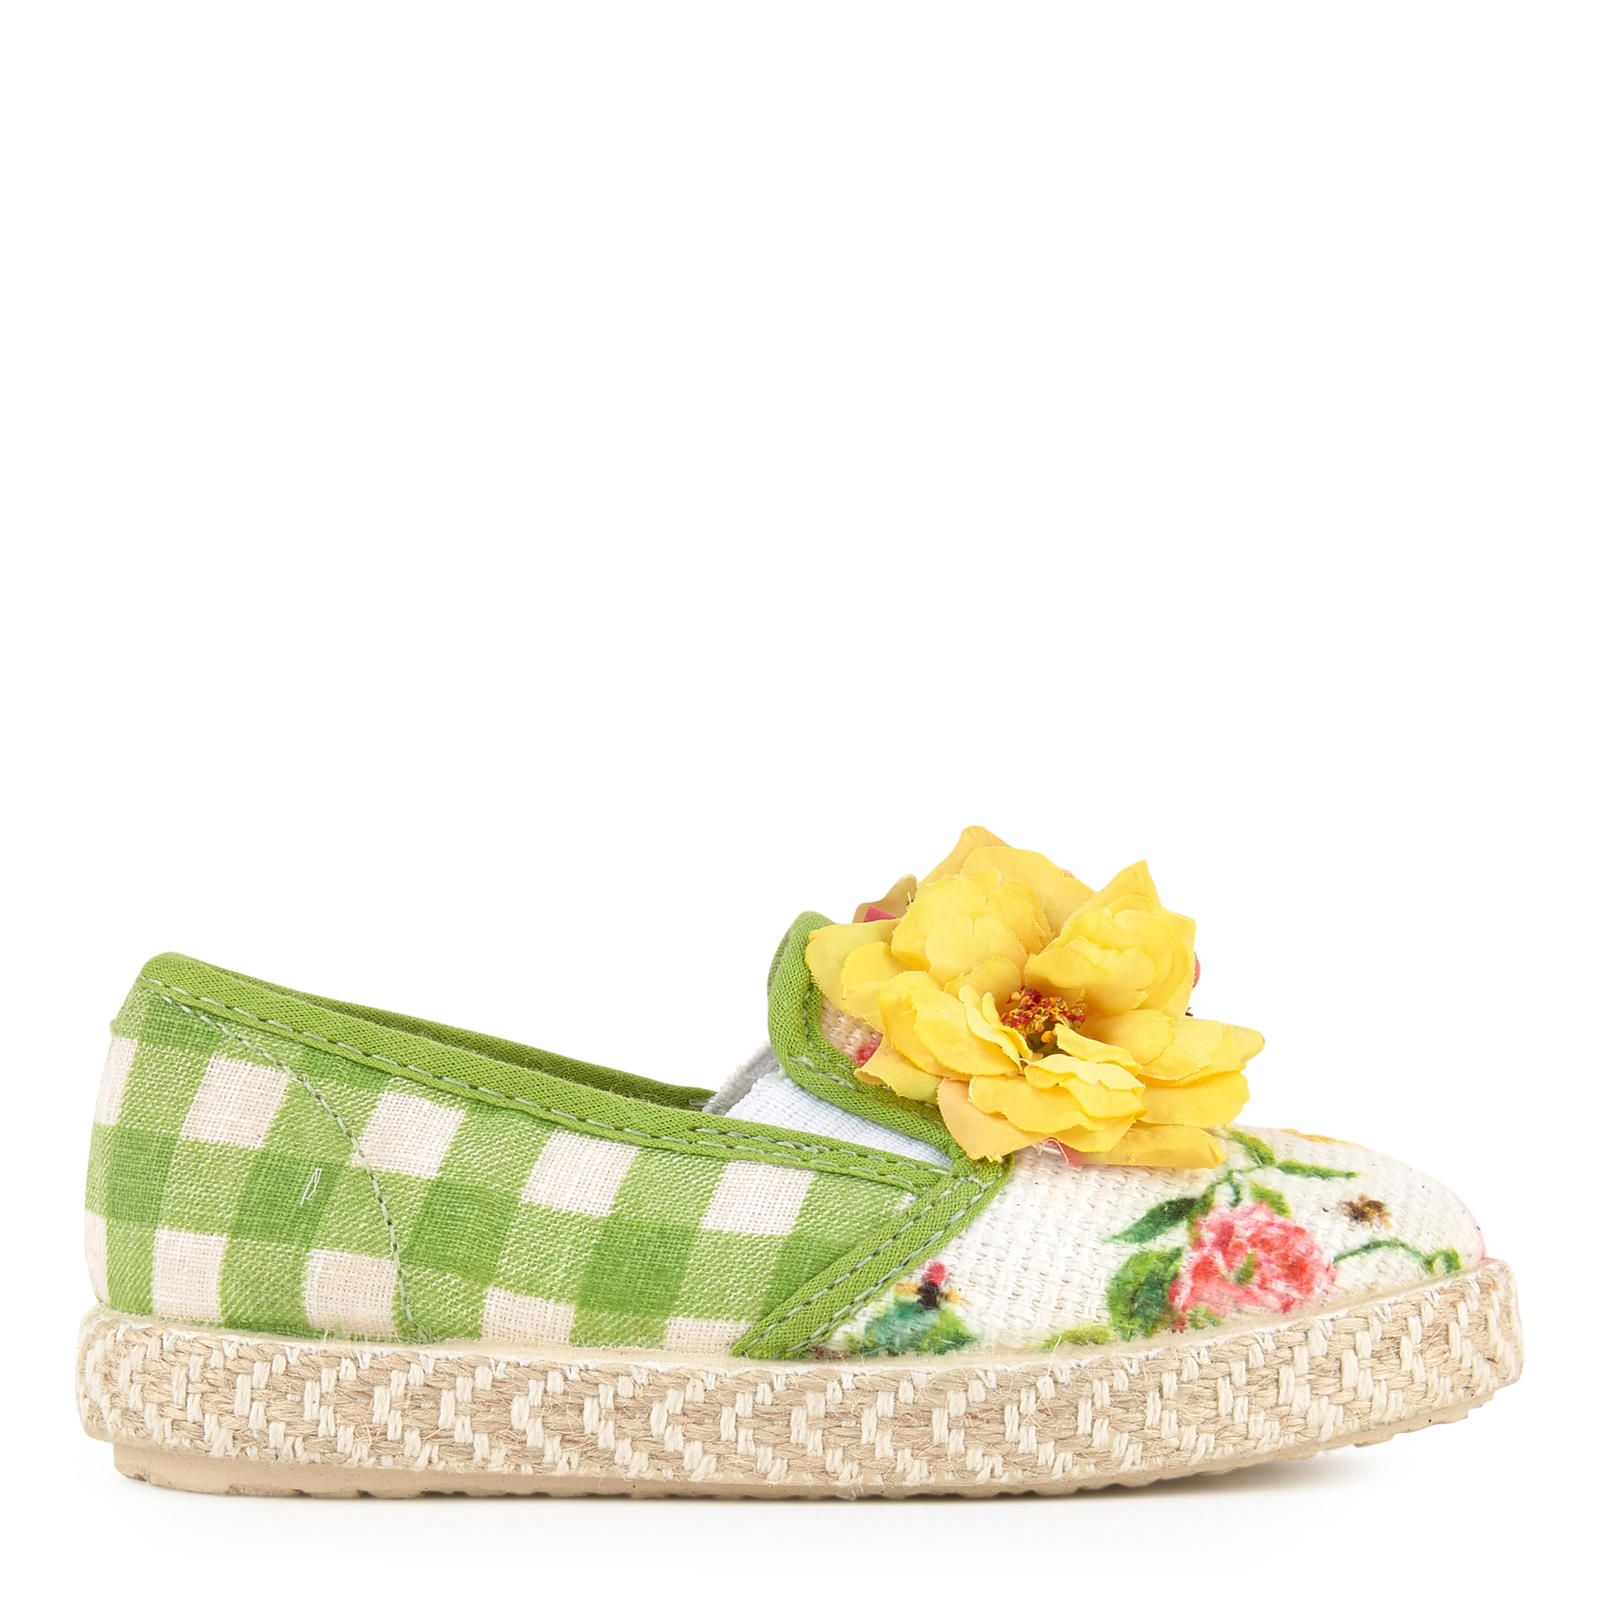 Cloth upper Rubber soles Soft upper Wide necklines Reinforced heels Stiff soles Elasticated tongues Gingham print Flower print Fancy flowers - $ 79.00